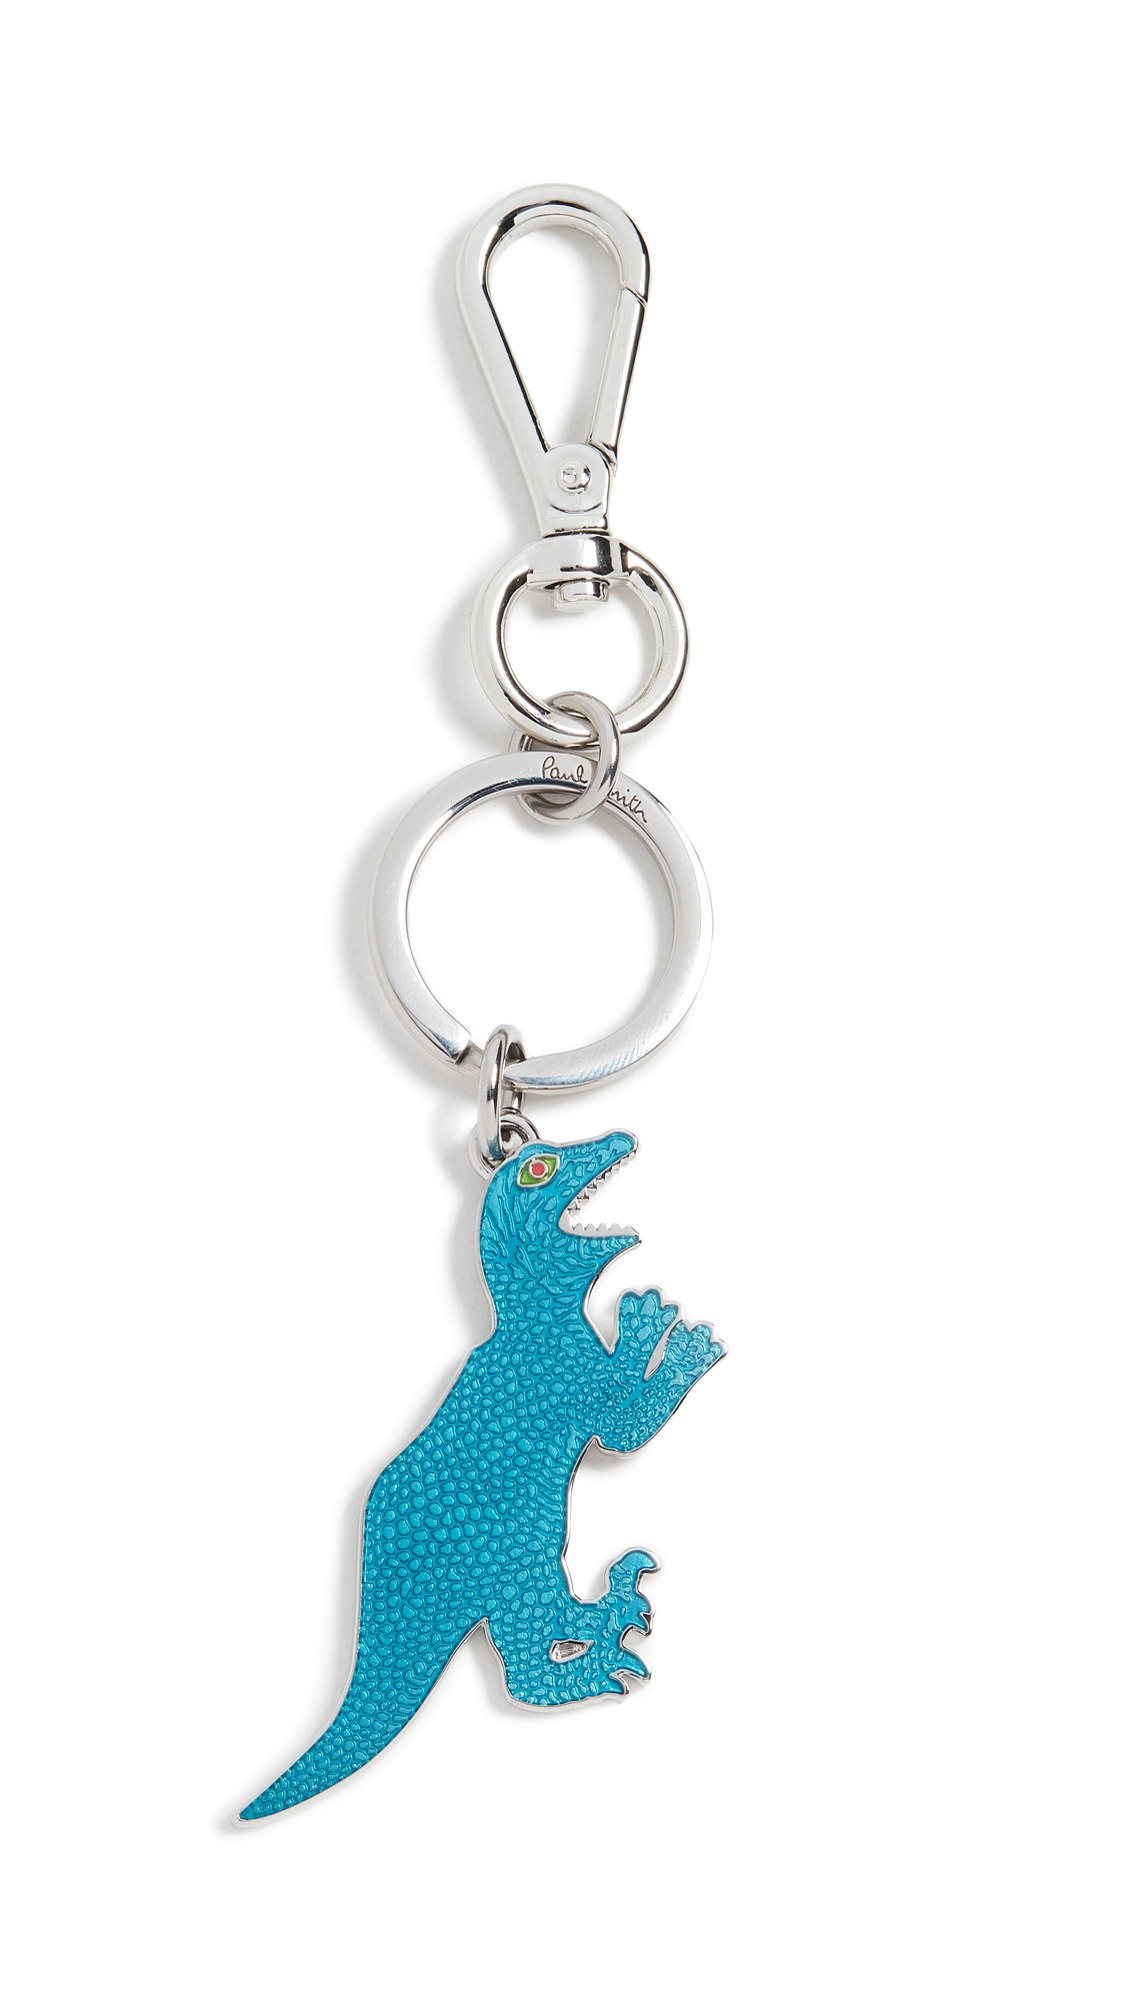 Paul Smith DINO KEY RING